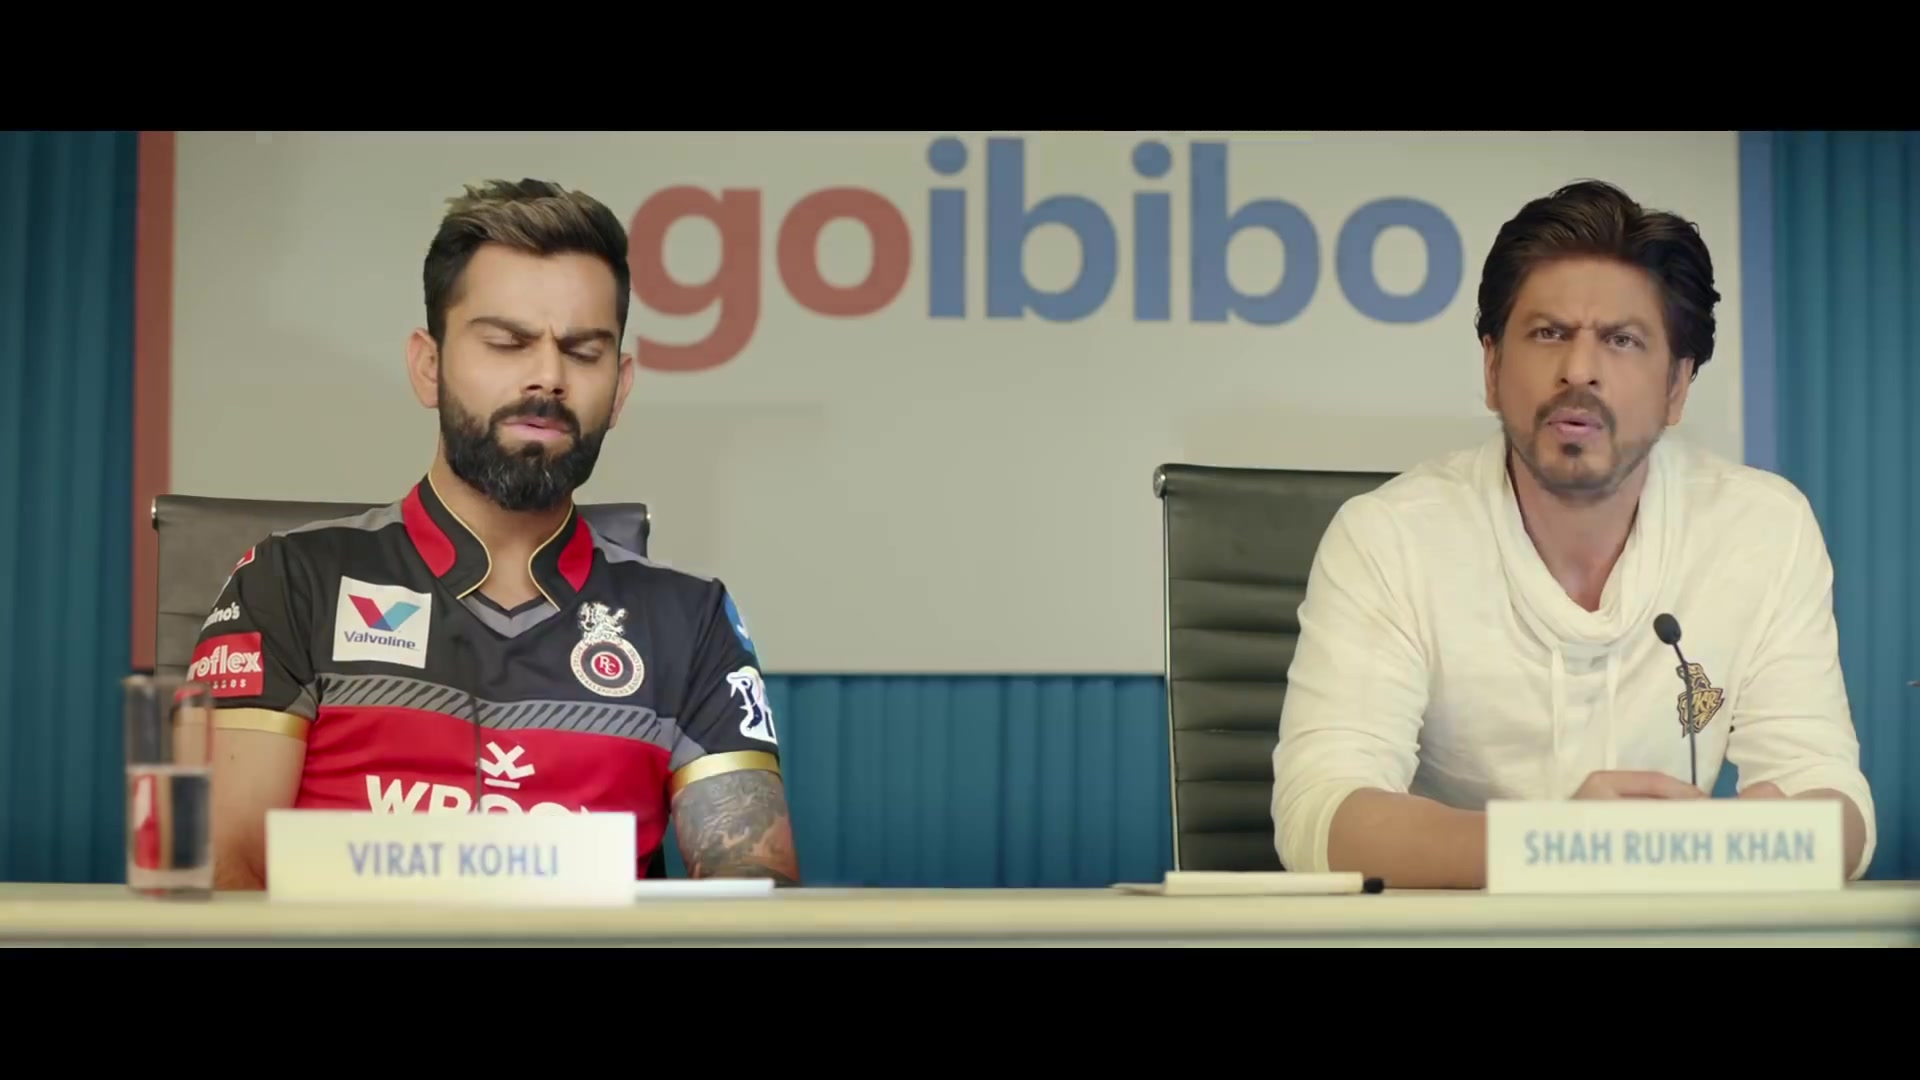 Goibibo Travel Cash Fest is Here Earn Trave Cash During